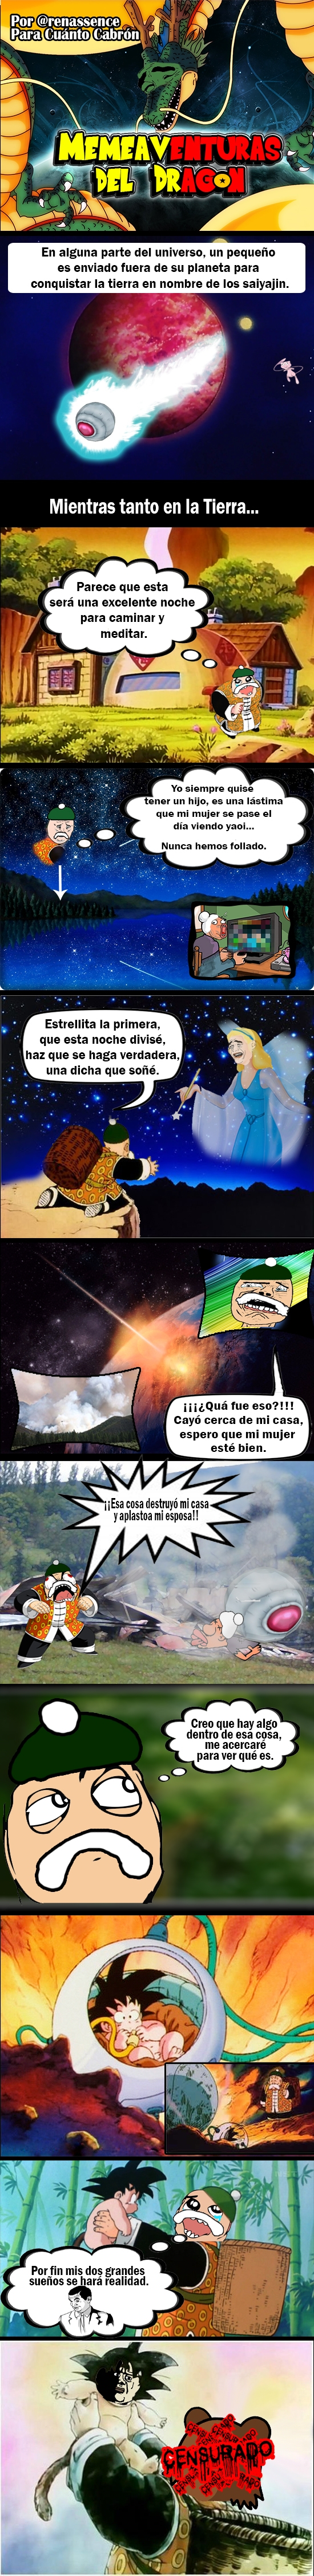 Oh_god_why - Memeaventuras del Dragon Episodio 1